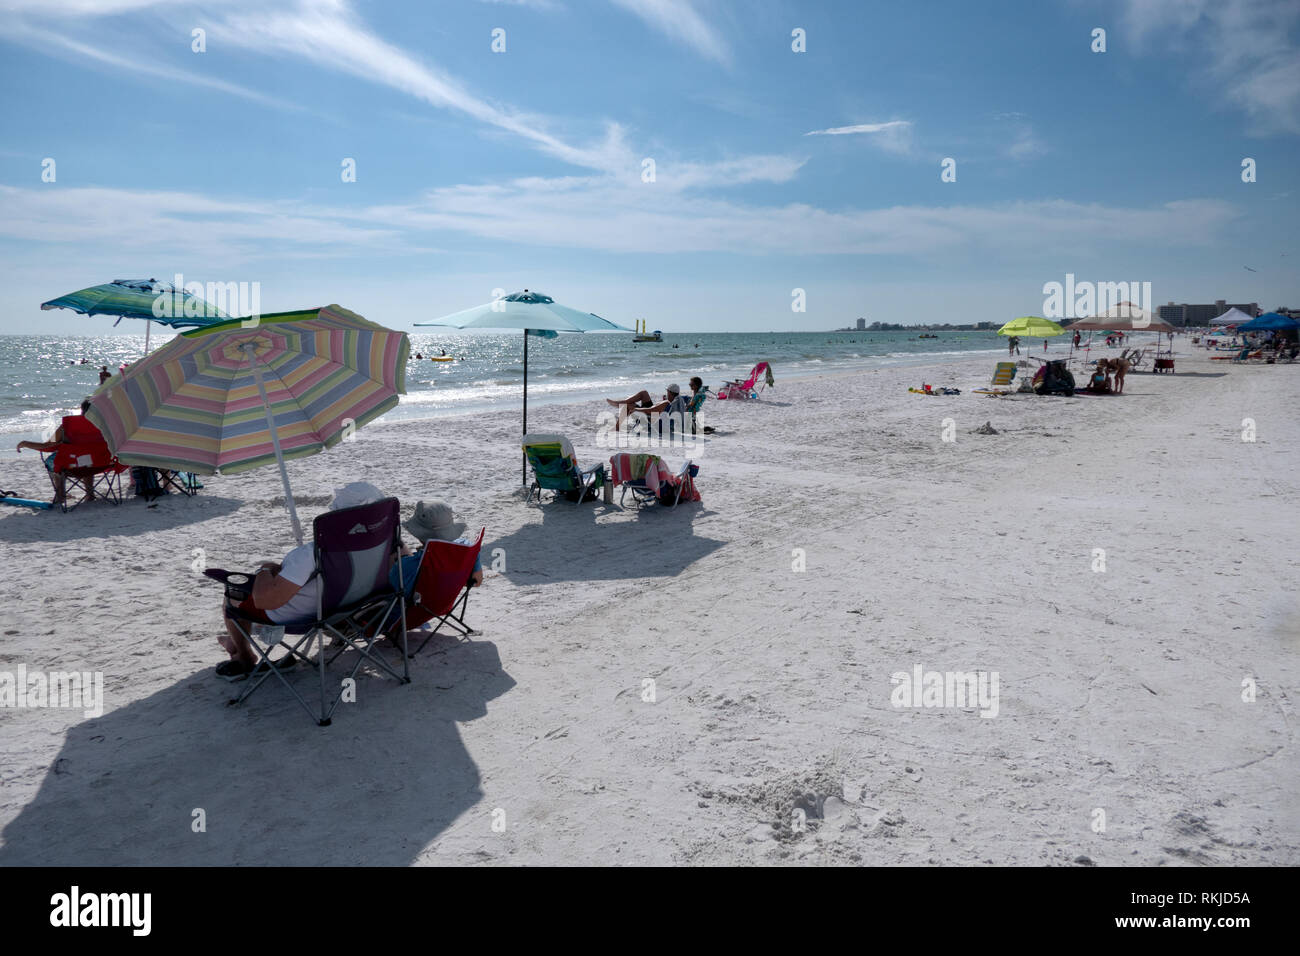 People relaxing on holidays on Siesta Key beach in Sarasota, Florida, USA. Tourists on summer vacations near the sea. American landscape and recreatio - Stock Image